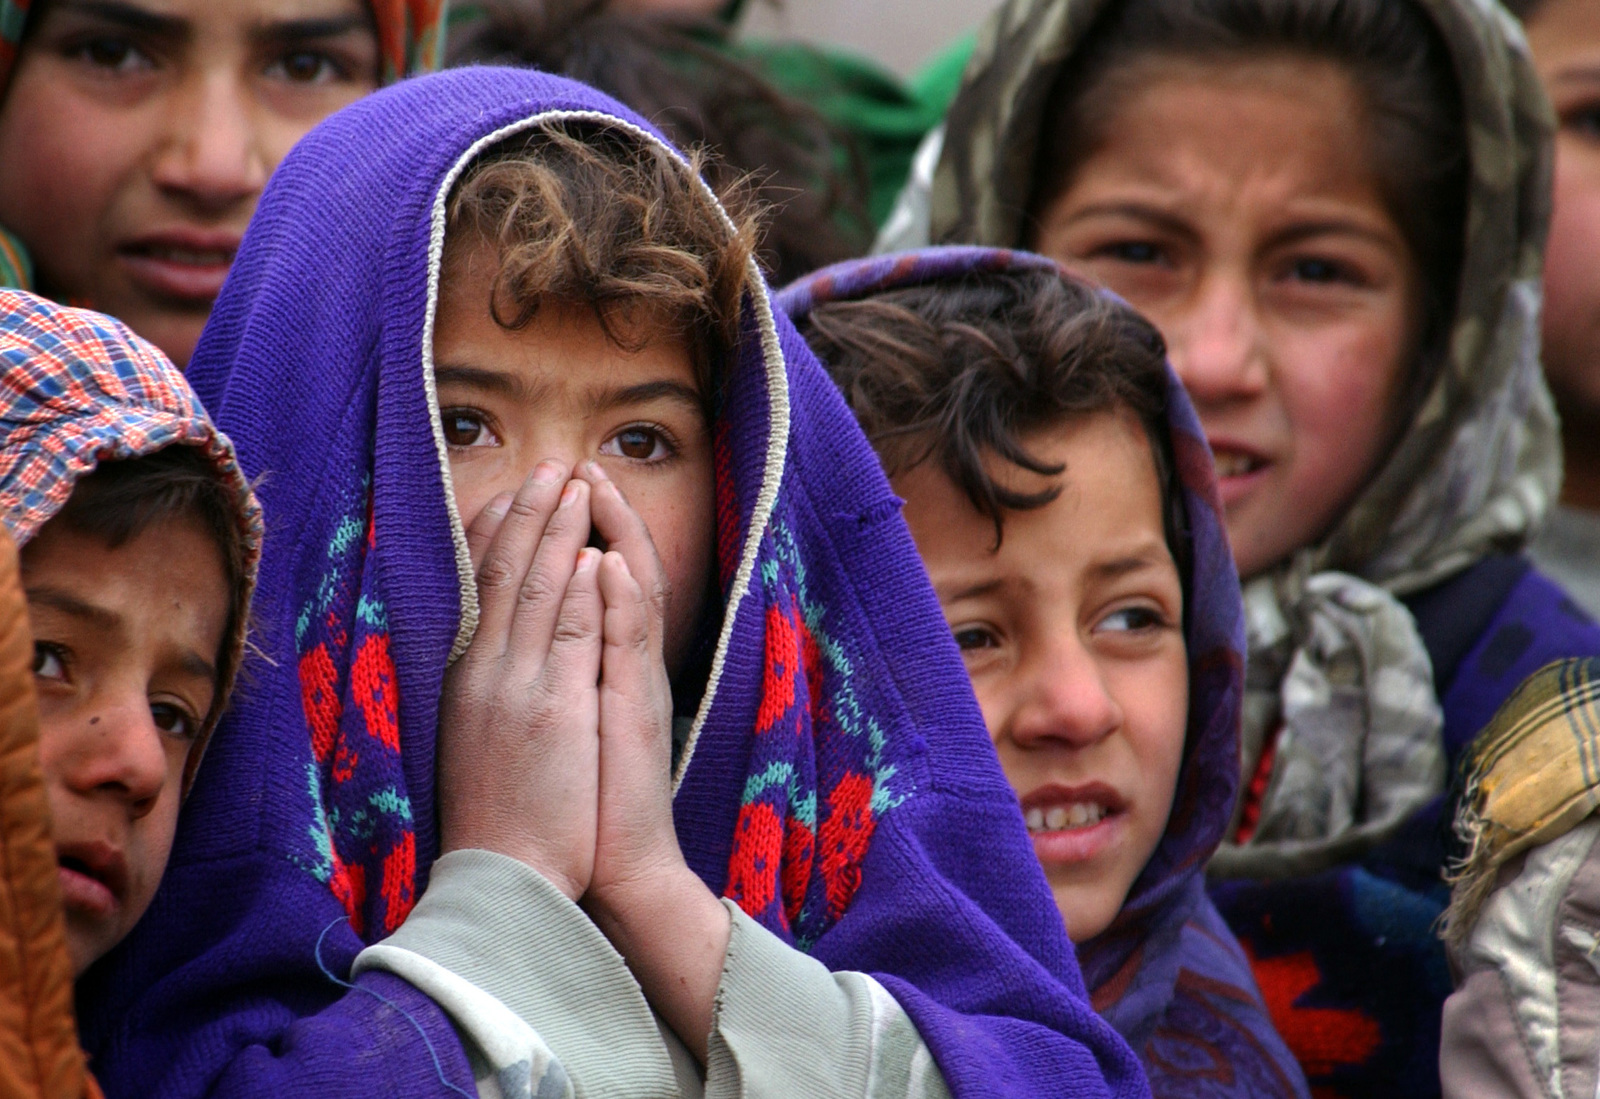 Afghani children from the village of Aroki, Province of Kapisa, in Afghanistan, wait to be seen by US military medics from the 48th Combat Support Hospital, who are conducting a Medical Civilian Action Program (MEDCAP), in support of Operation ENDURING FREEDOM